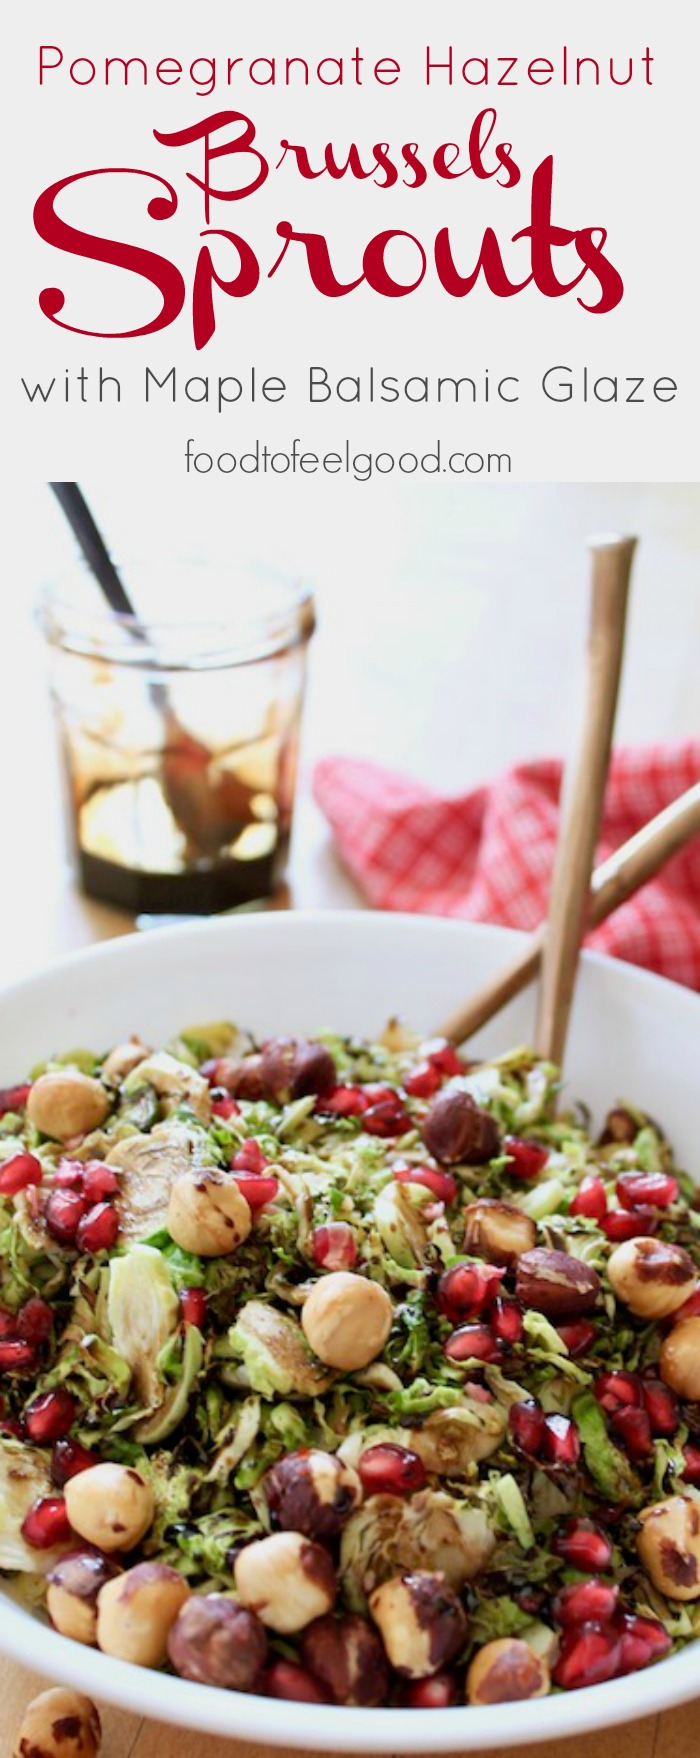 Pomegranate Hazelnut Shredded Brussels Sprouts with Maple Balsamic Glaze | A healthy Paleo and Vegan holiday dish | Gluten-Free | Dairy-Free | #healthyholidayrecipes #brusselssprouts #paleo #vegan #glutenfree